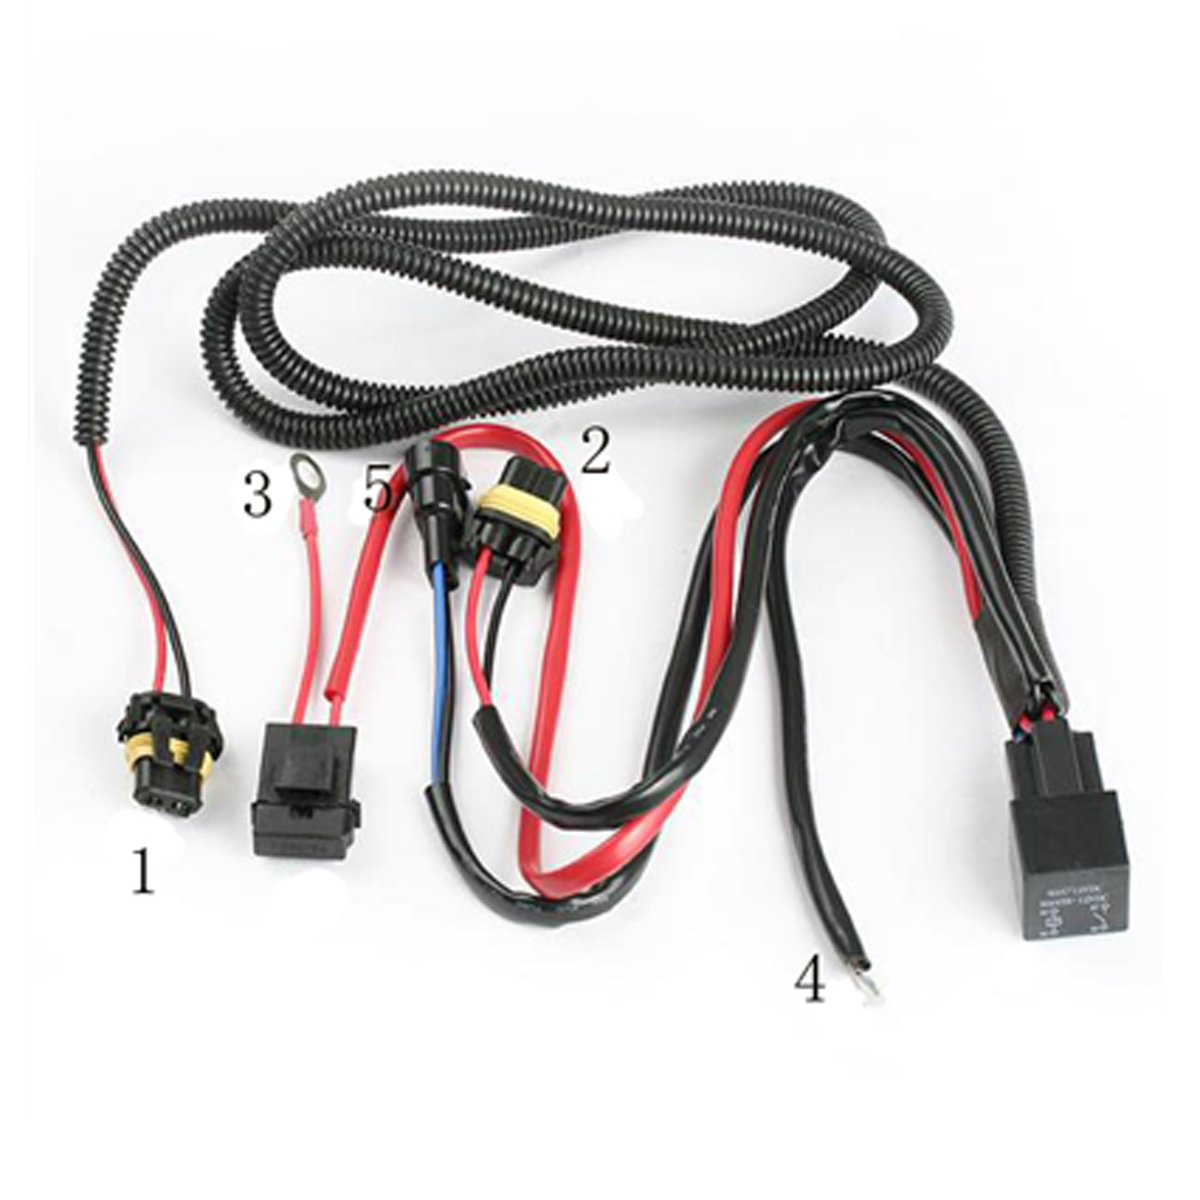 61lwCIuIleL._SL1200_ amazon com innovited universal relay wiring harness for all hid ddm tuning wire diagrams at eliteediting.co